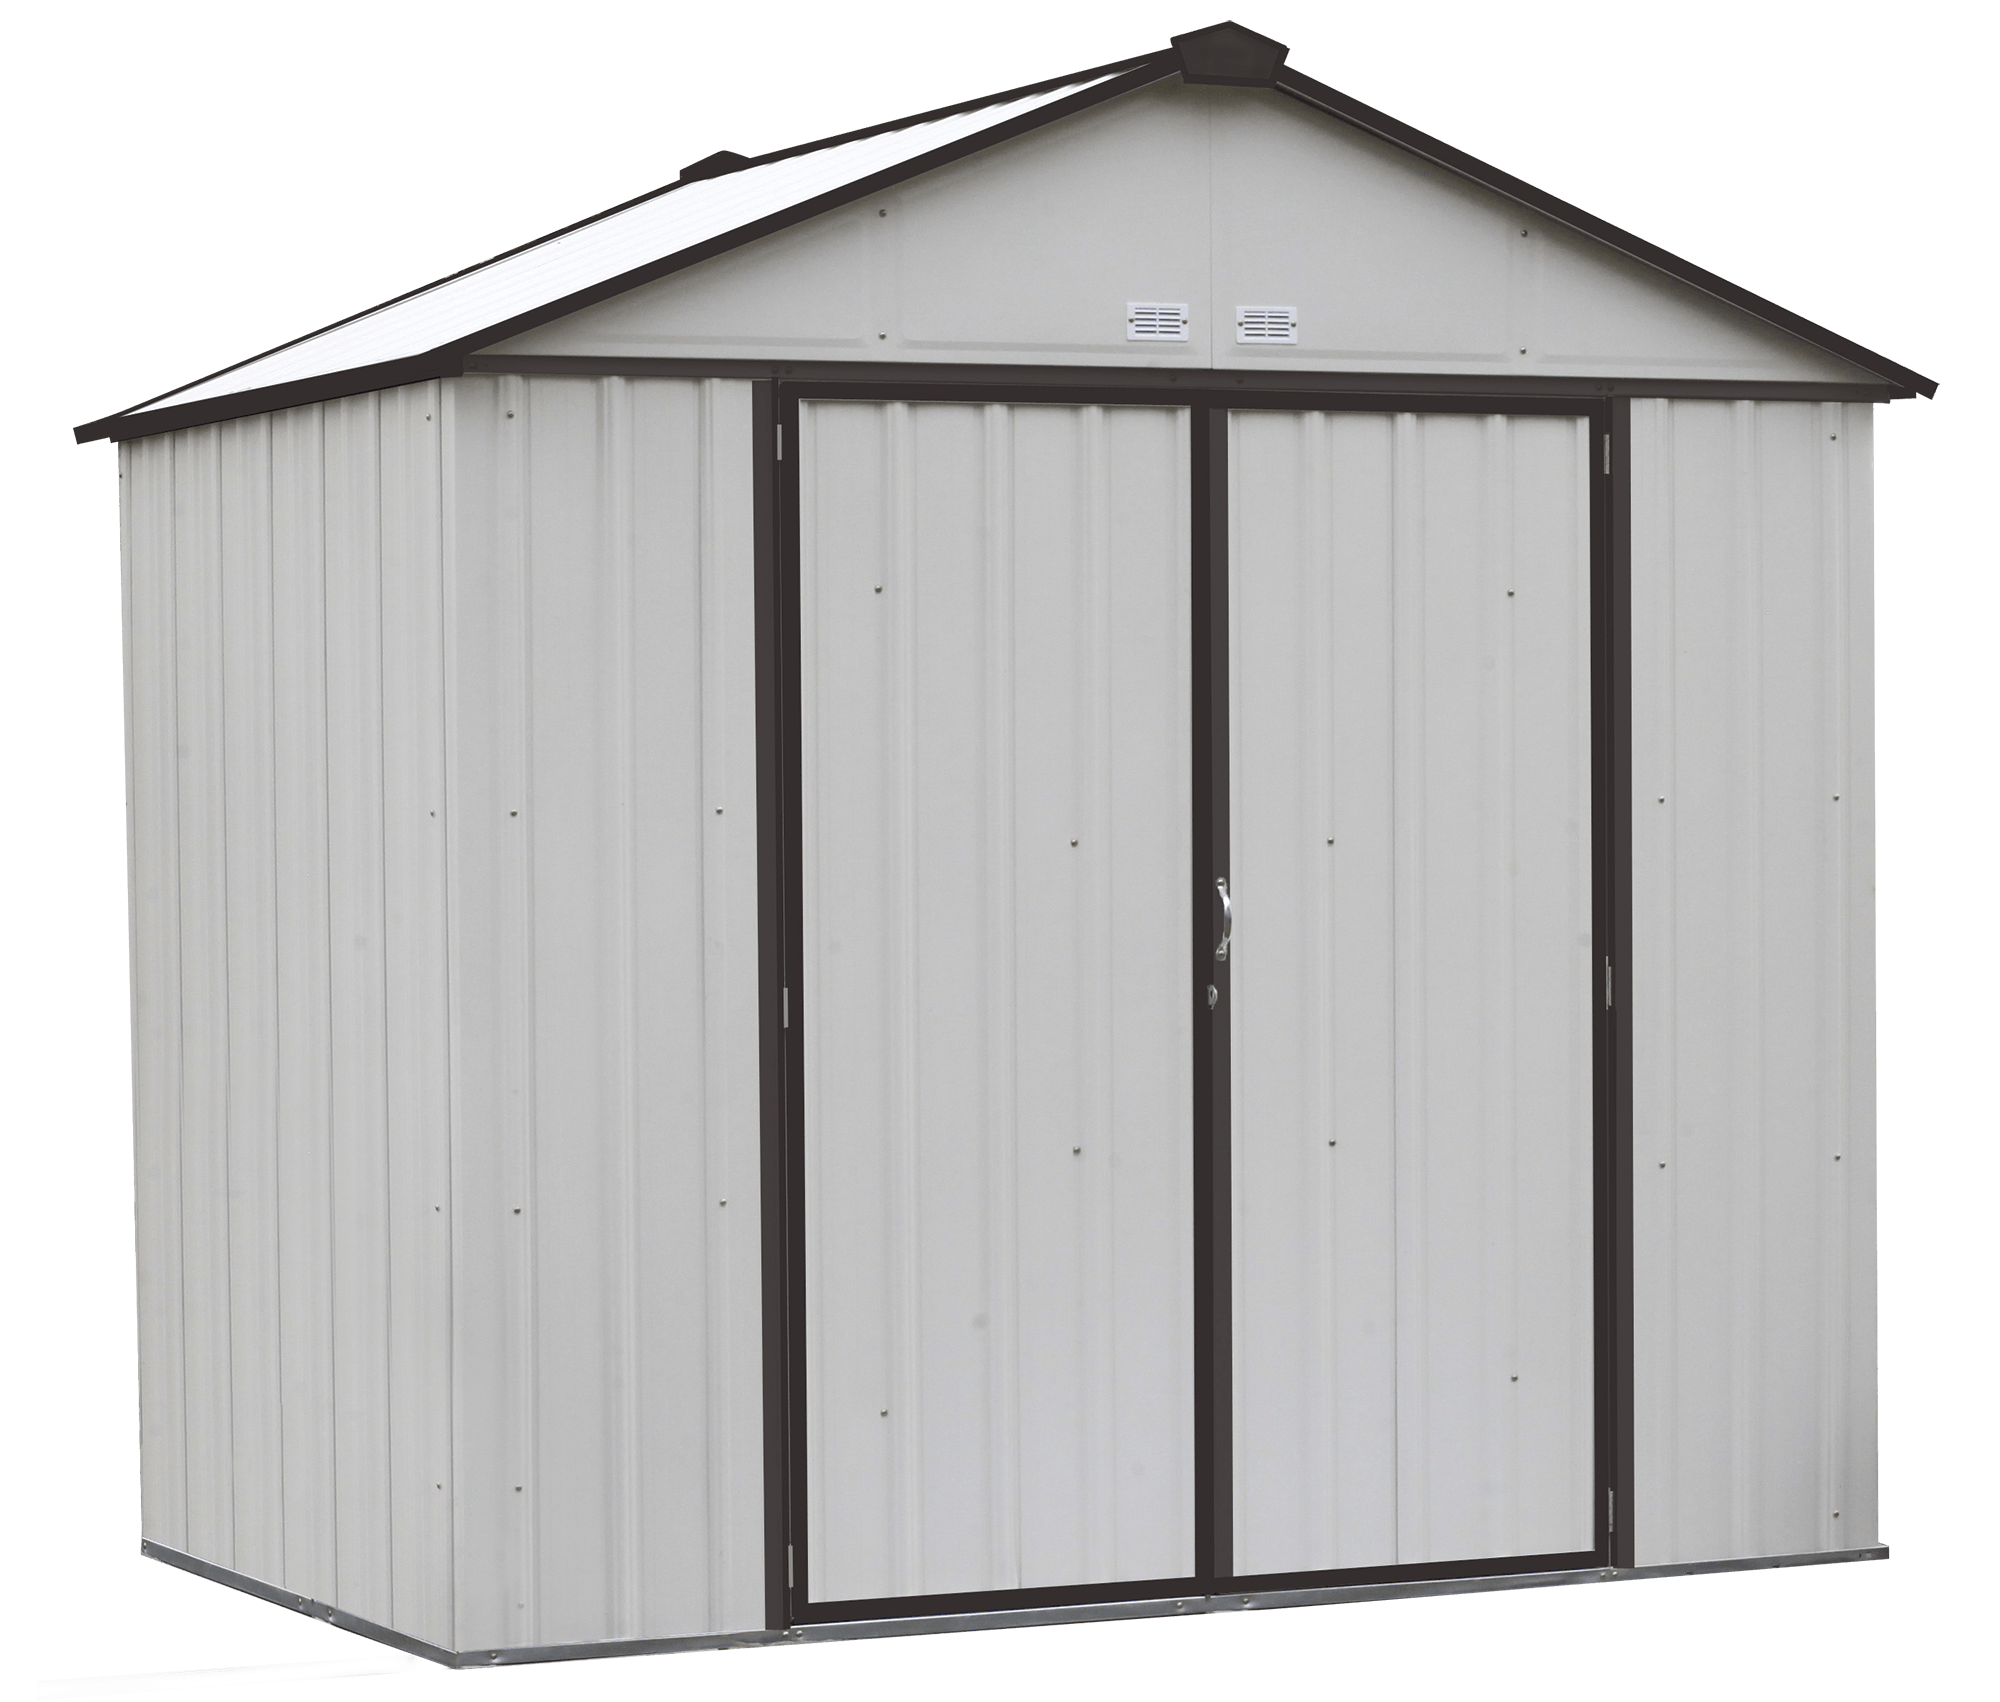 Walmart storage sheds clearance plans for a autos post for Storage sheds for sale near me